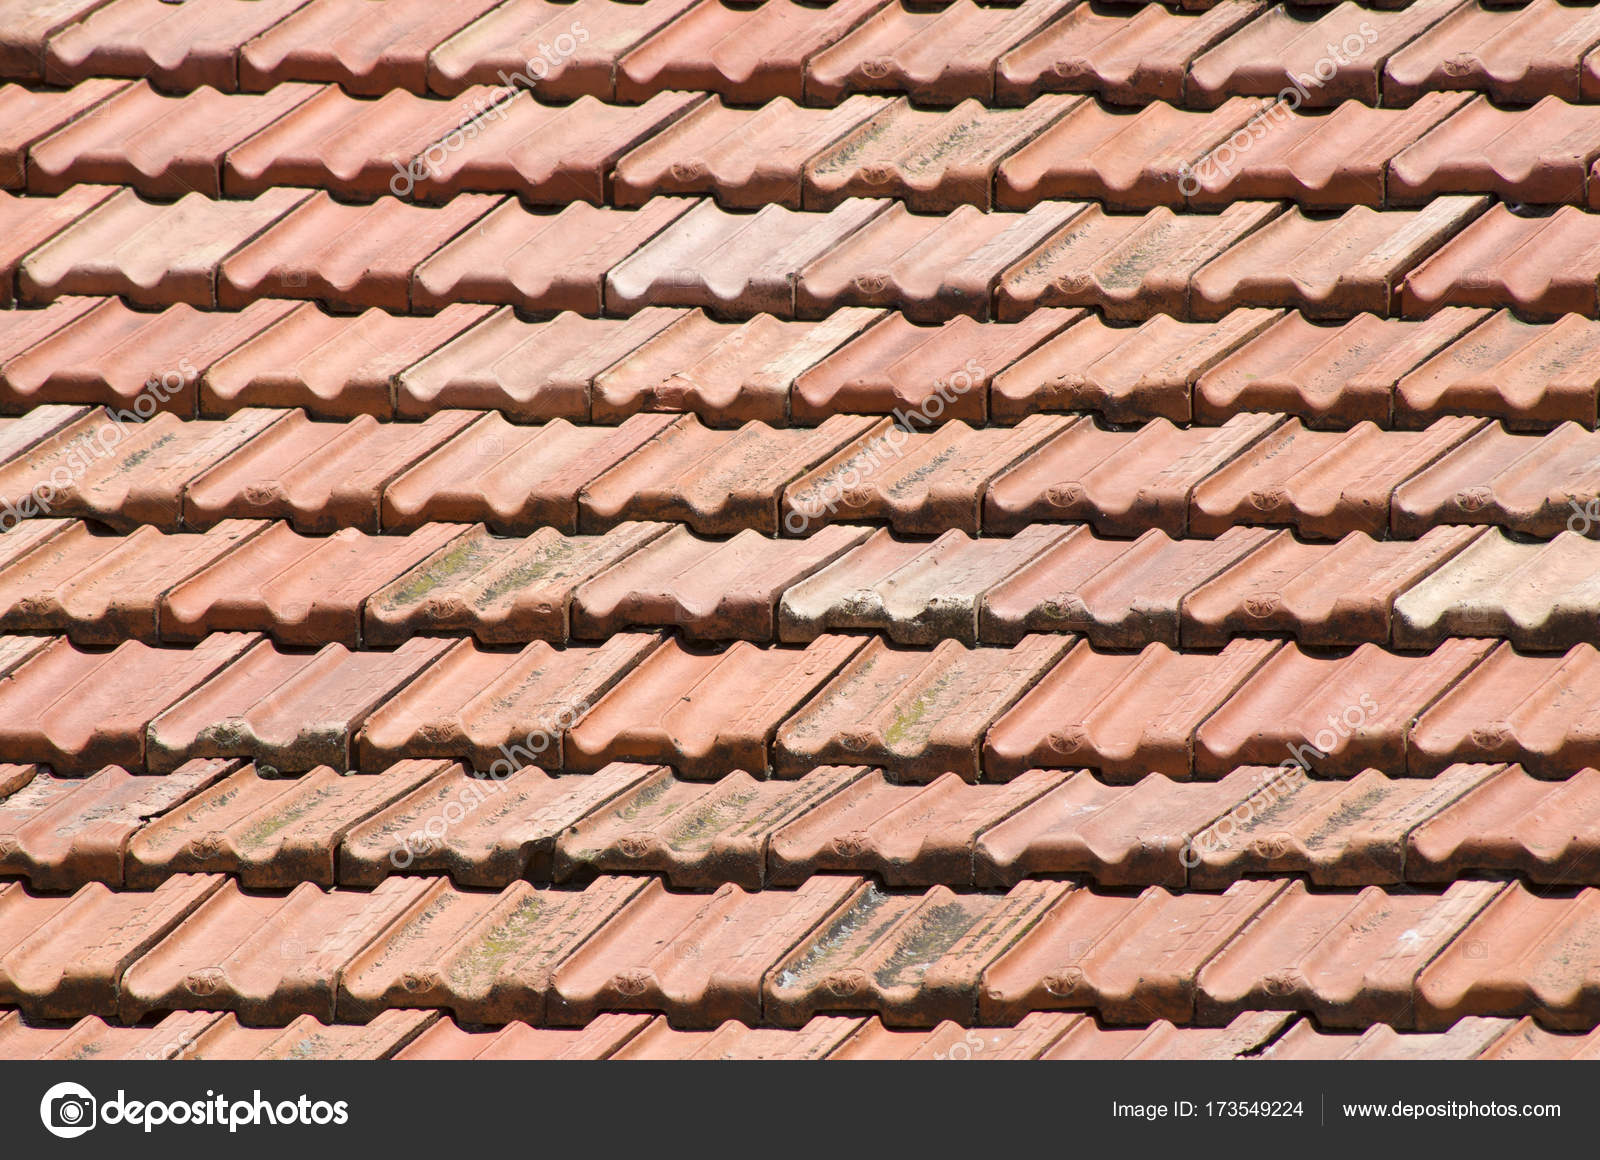 Old Roof With Ceramic Tiles Closeup Stock Photo Isabela1966